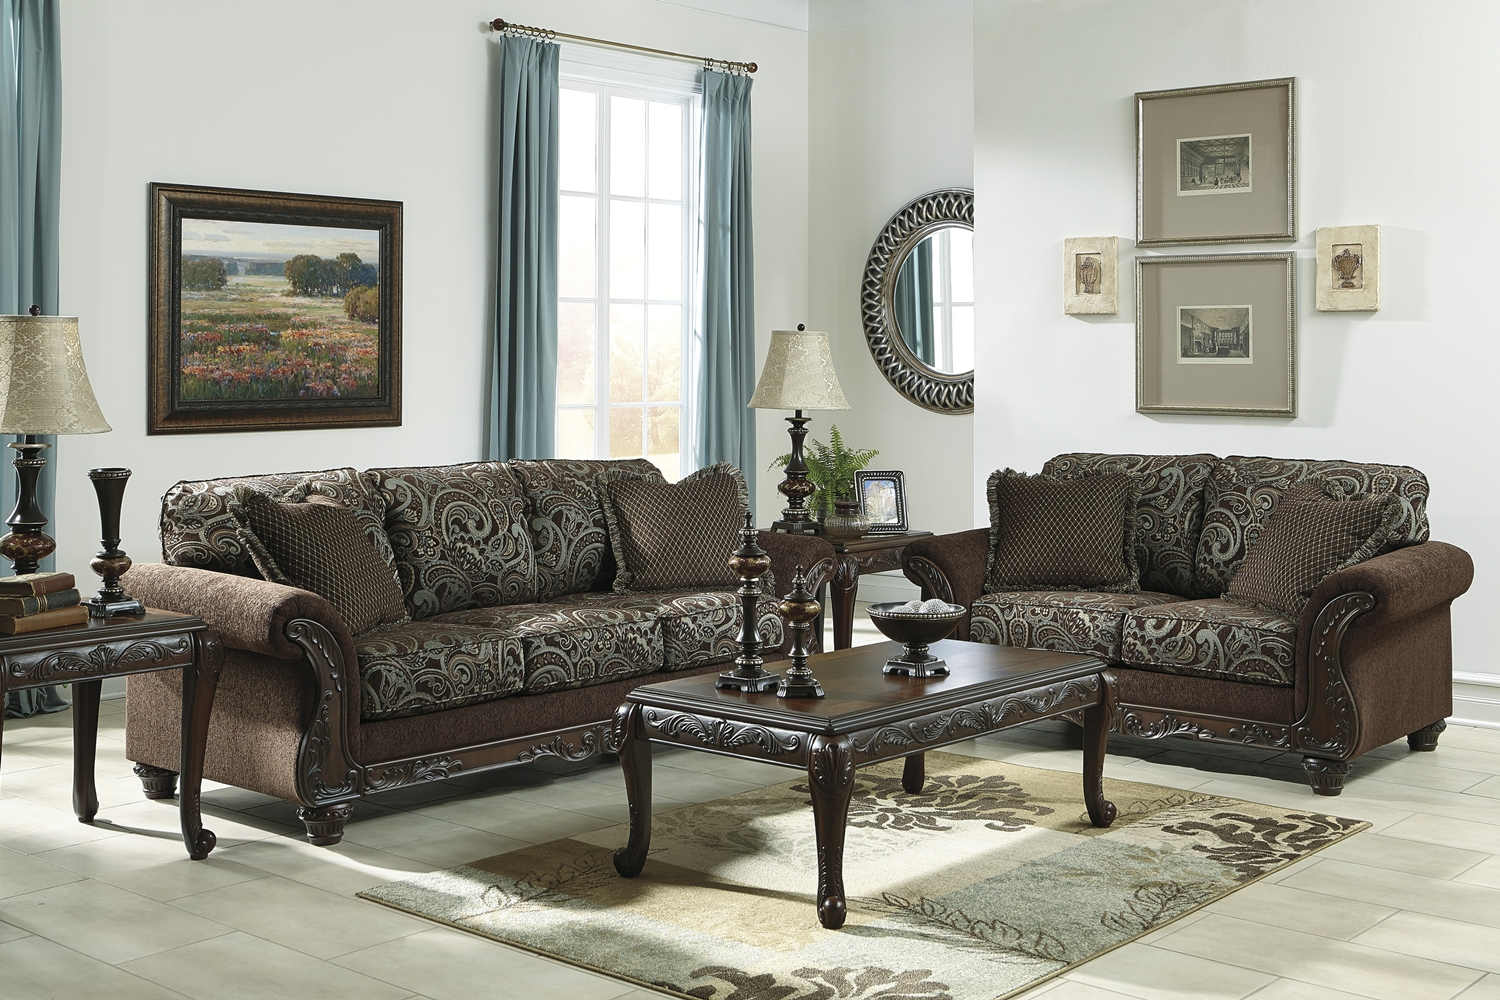 traditional style brown sofa love seat living room furniture set. Black Bedroom Furniture Sets. Home Design Ideas